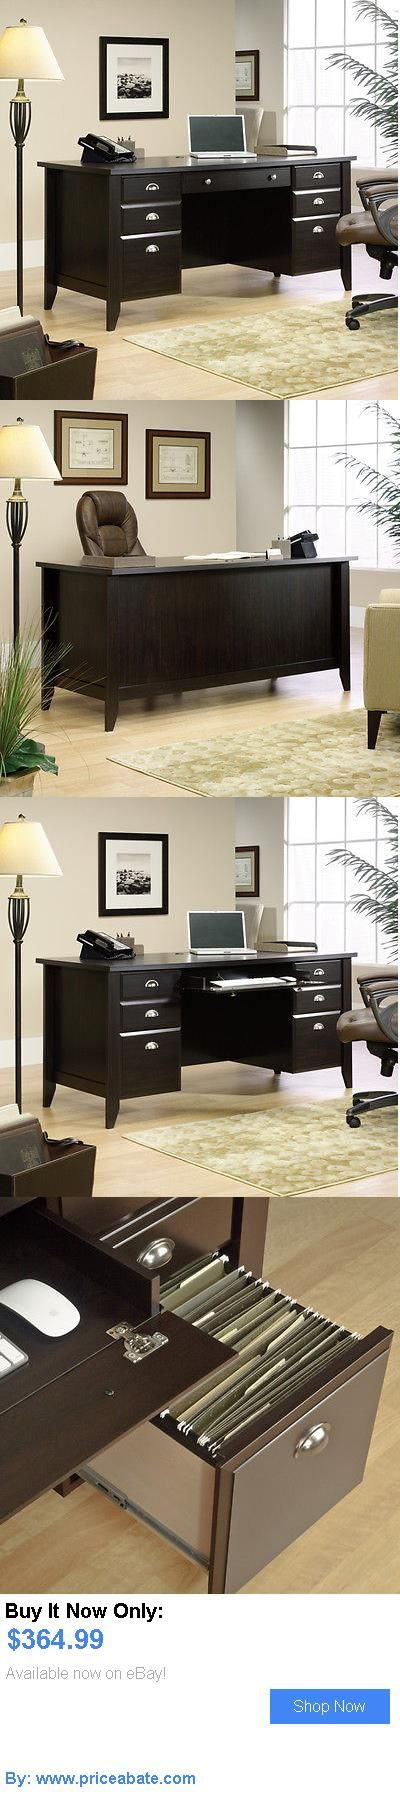 Office Furniture: New Sauder Furniture 408920 Home Office Shoal Creek Dark Wood Executive Cpu Desk BUY IT NOW ONLY: $364.99 #priceabateOfficeFurniture OR #priceabate